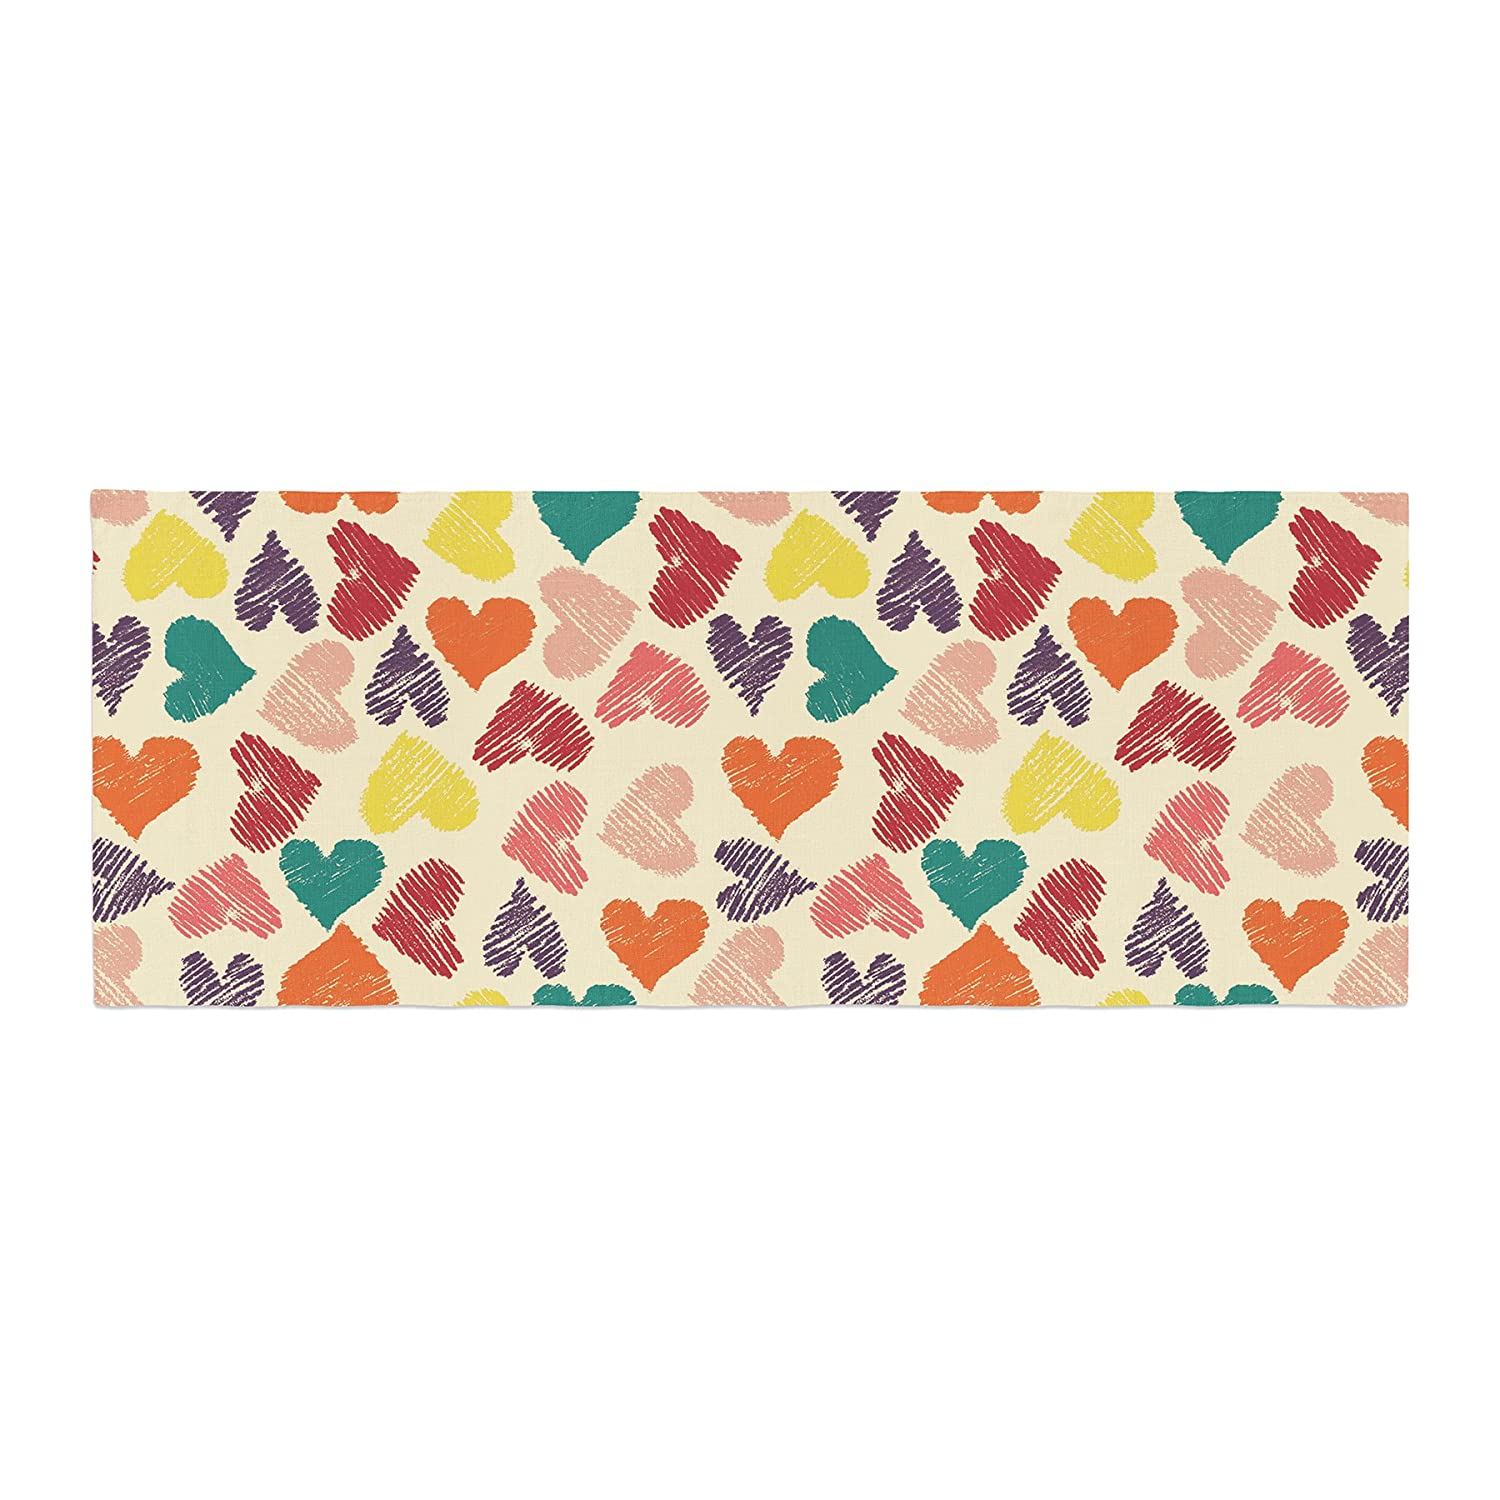 Kess InHouse Louise Machado Little Hearts Bed Runner